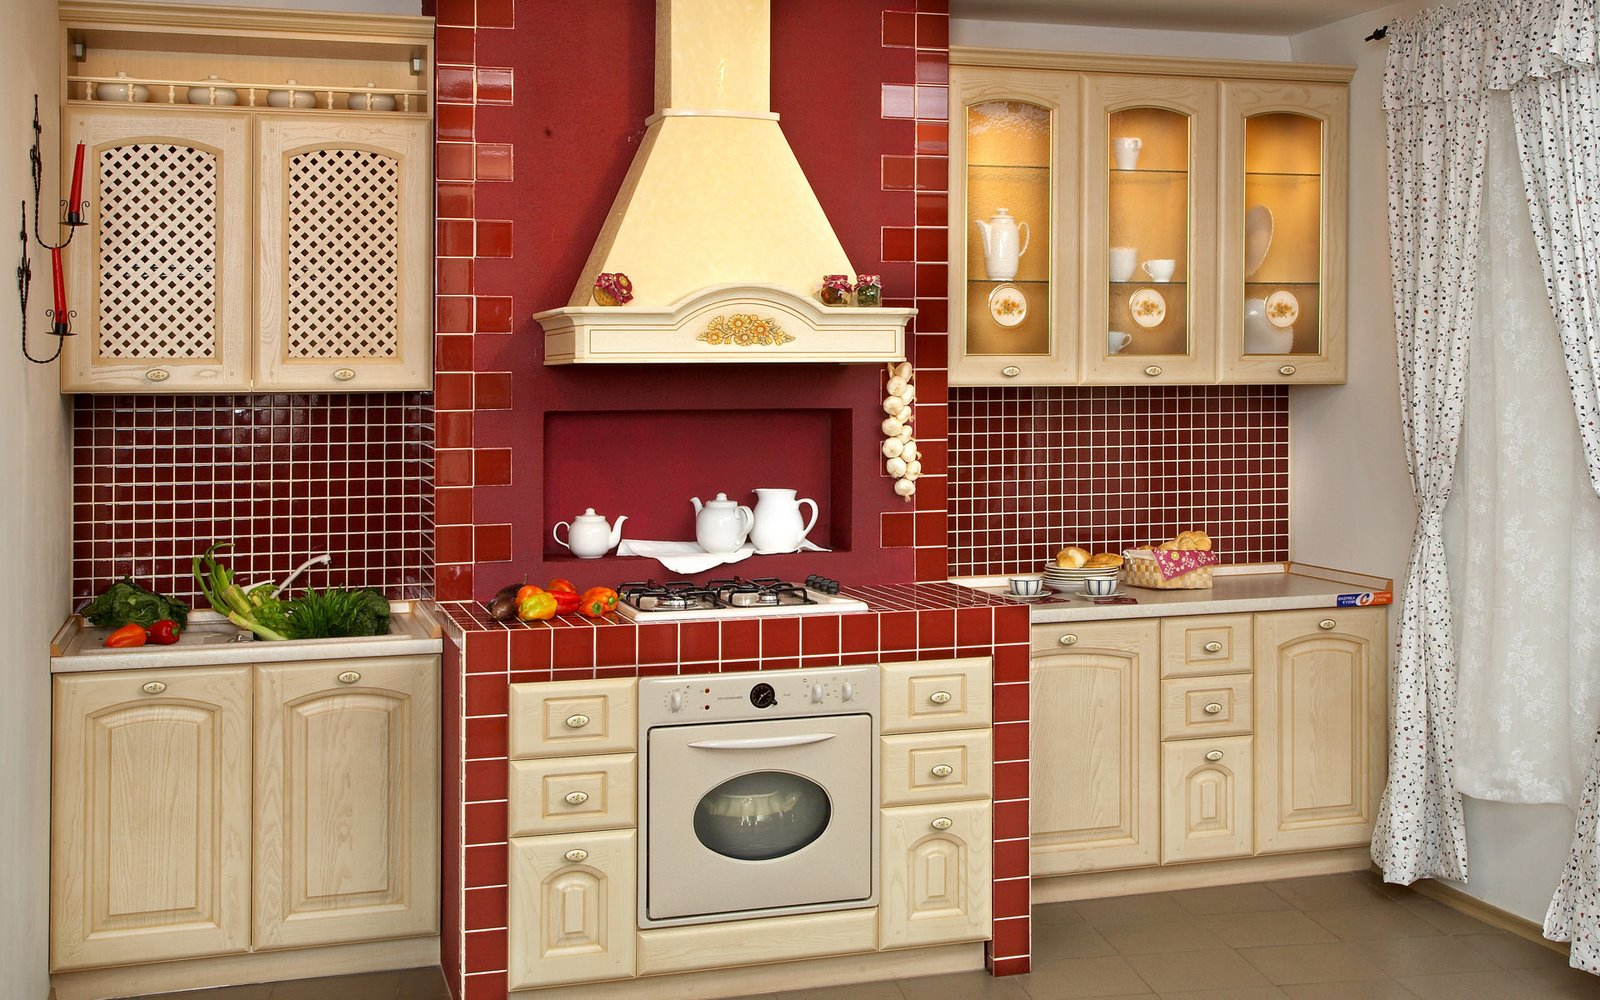 Kitchen backsplash design ideas and tile pictures